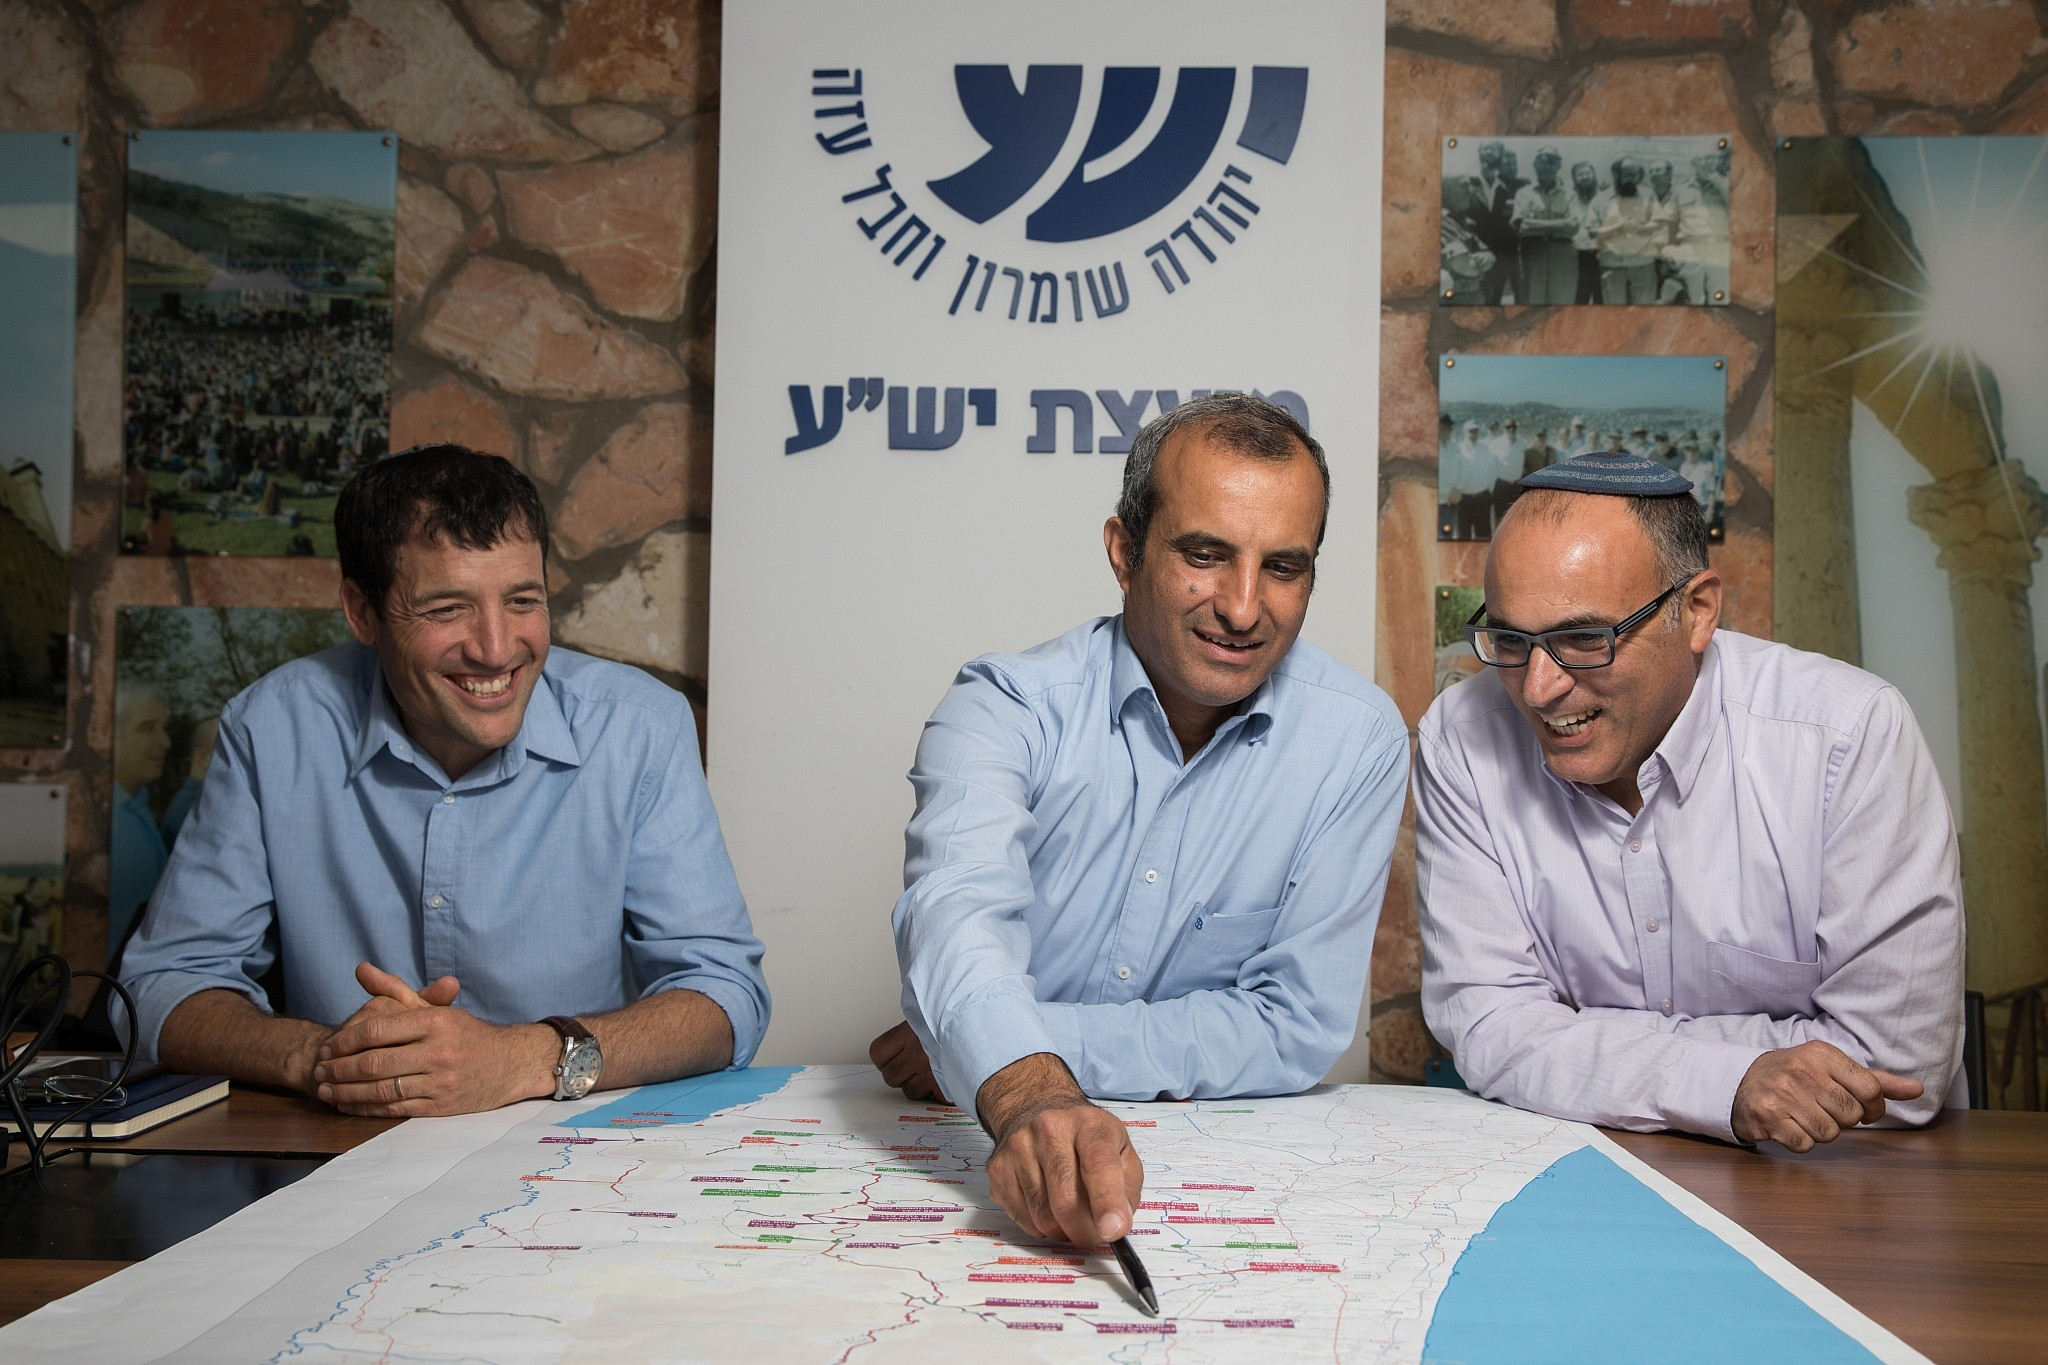 Yesha Council leaders Shilo Adler, Hananel Dorani and Yigal Dilmoni (right), pictured on May 9, 2018. (Flash90)